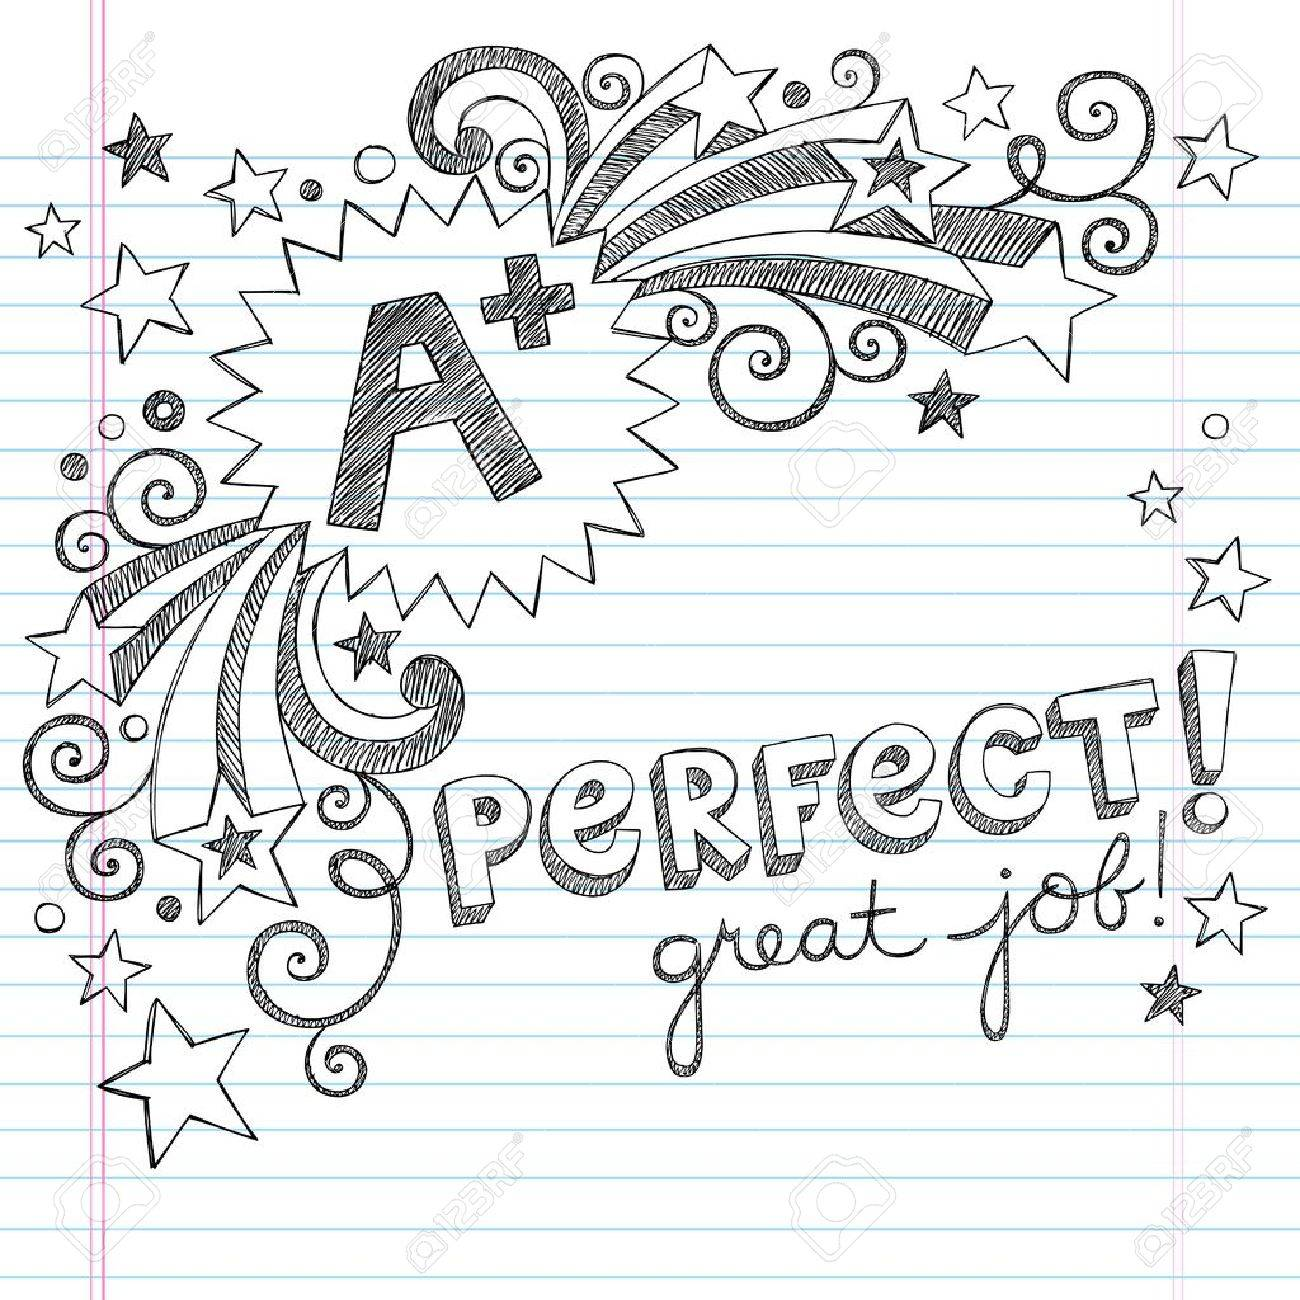 A Plus Student Great Grades Back to School Sketchy Notebook Doodles with Lettering, Shooting Stars, and Swirls- Hand-Drawn Illustration Design Elements on Lined Sketchbook Paper Background Stock Vector - 19090389